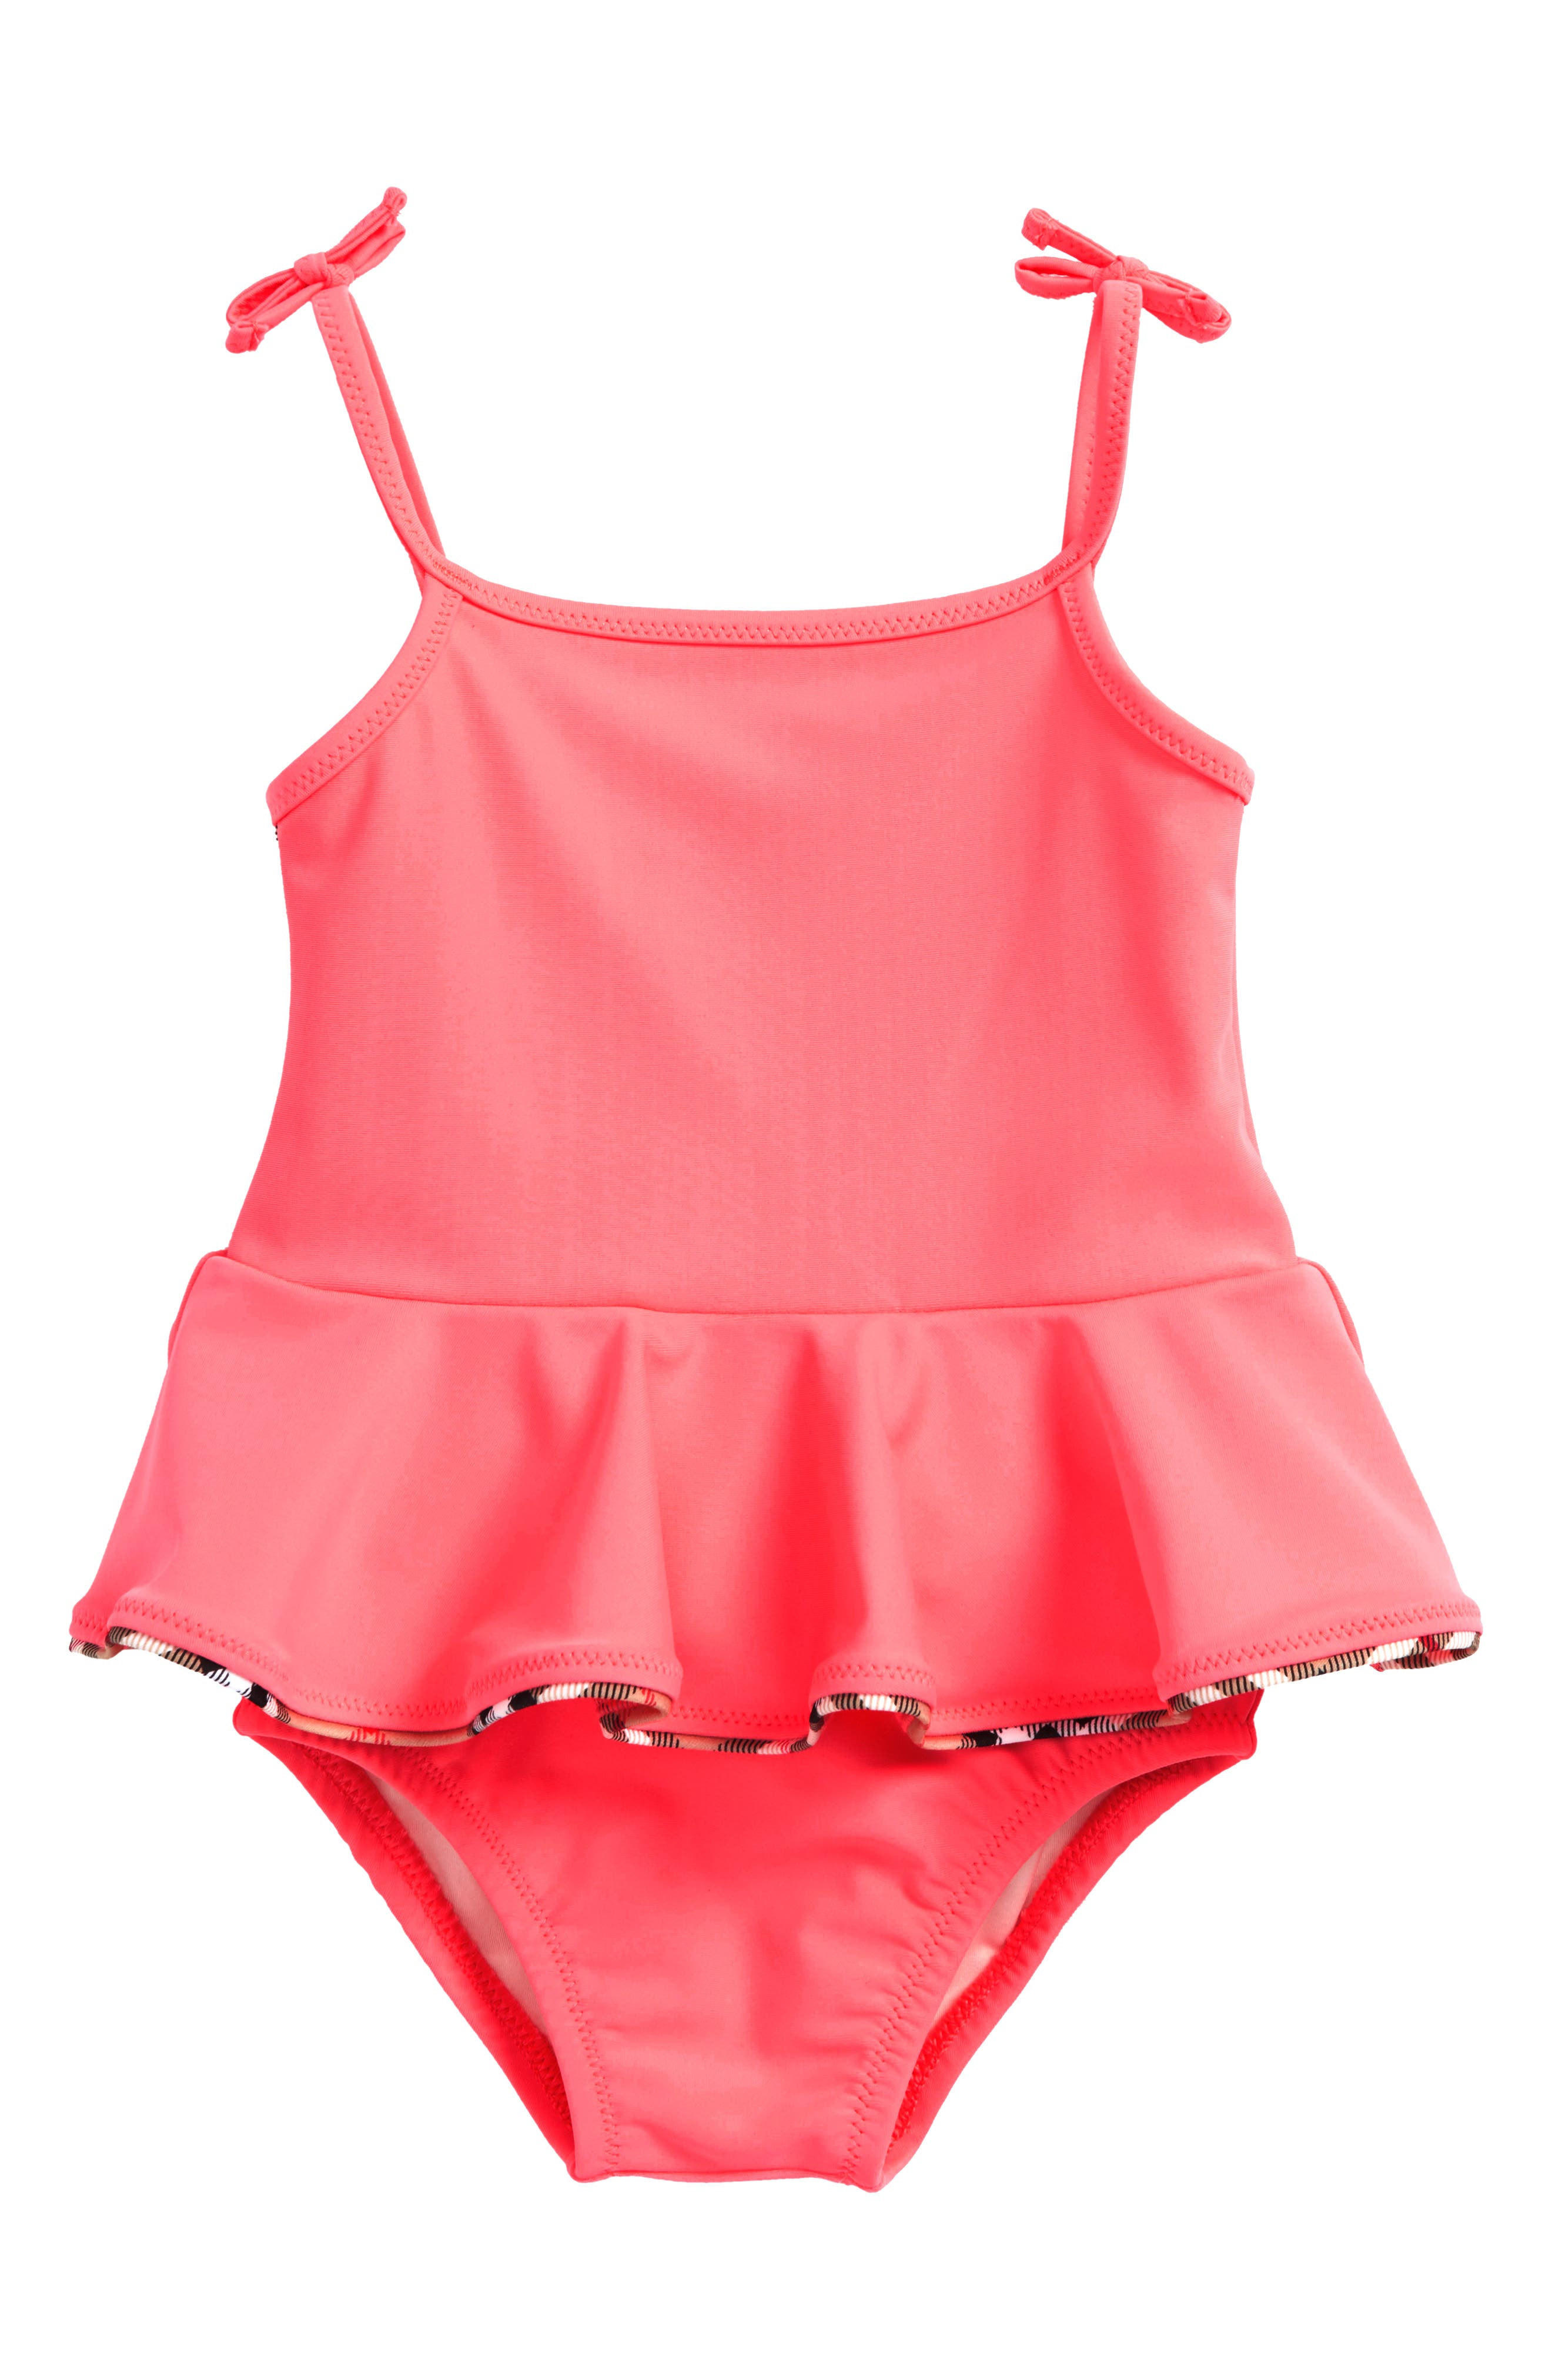 Ludine Skirted One-Piece Swimsuit,                         Main,                         color, Bright Coral